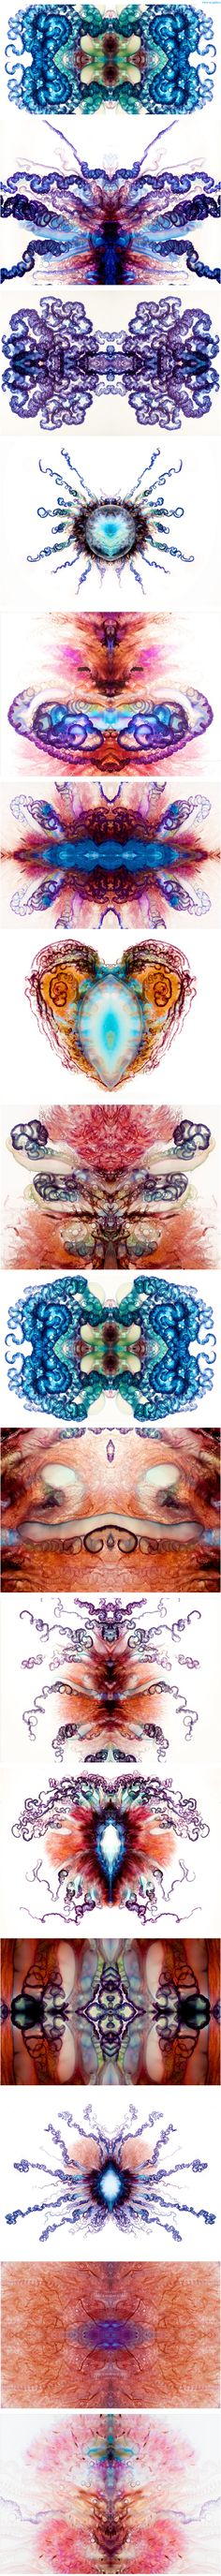 Psychedelic Portuguese Man-of-War Photos by Aaron Ansarov   Wired.com